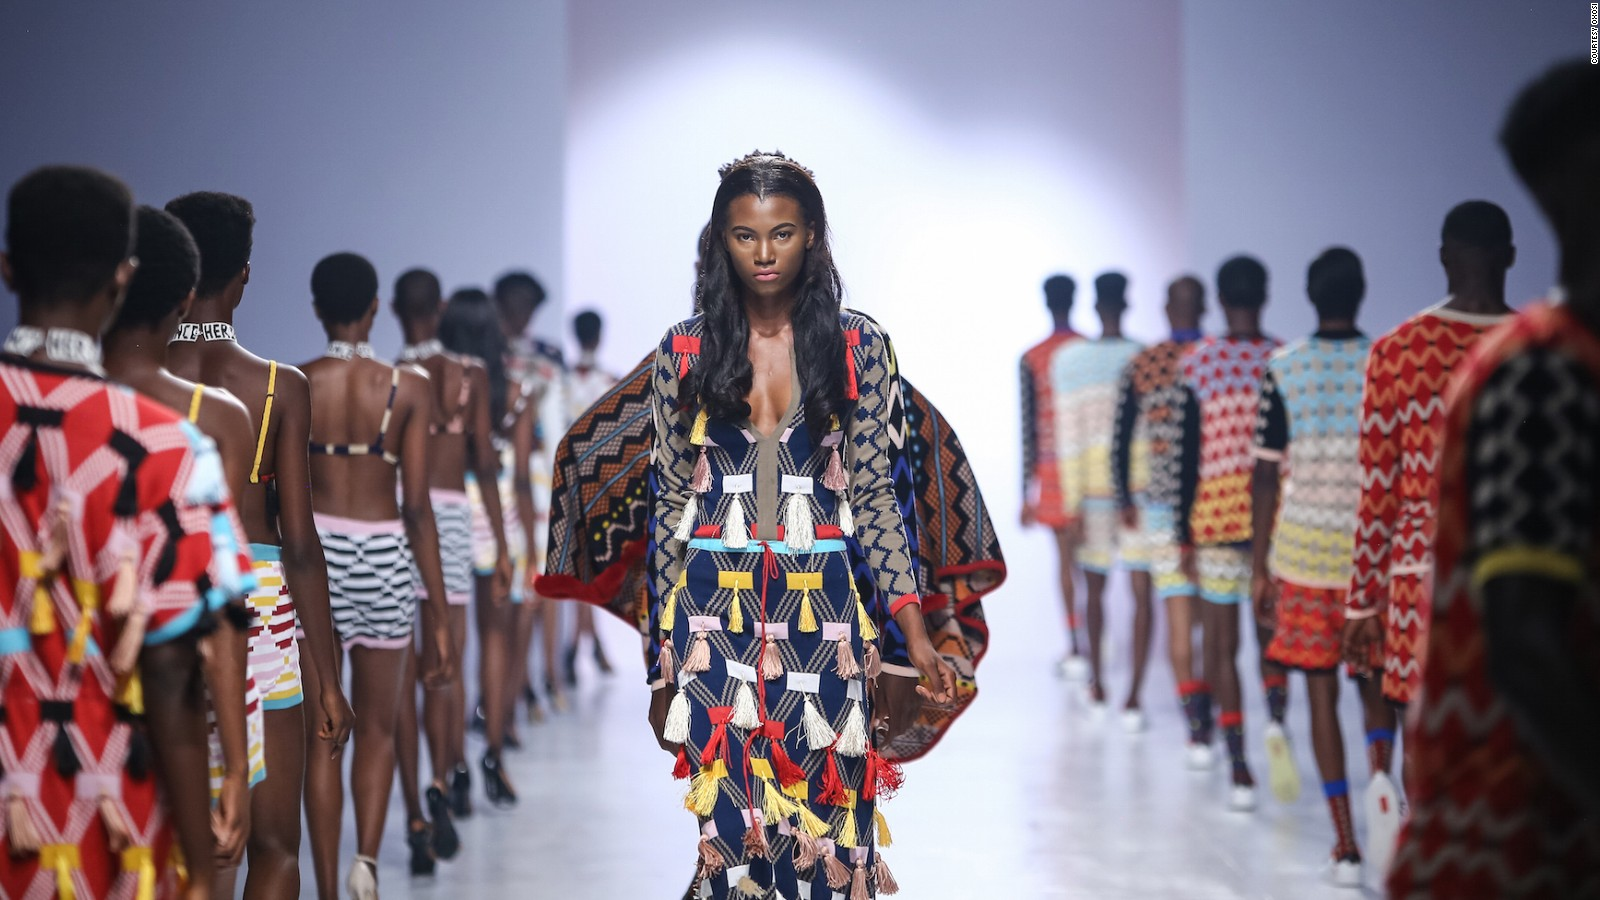 Africa's fashion influence is poised to introduce a global shift| & what  that means for the fashion world | Pursuit of Daydreams